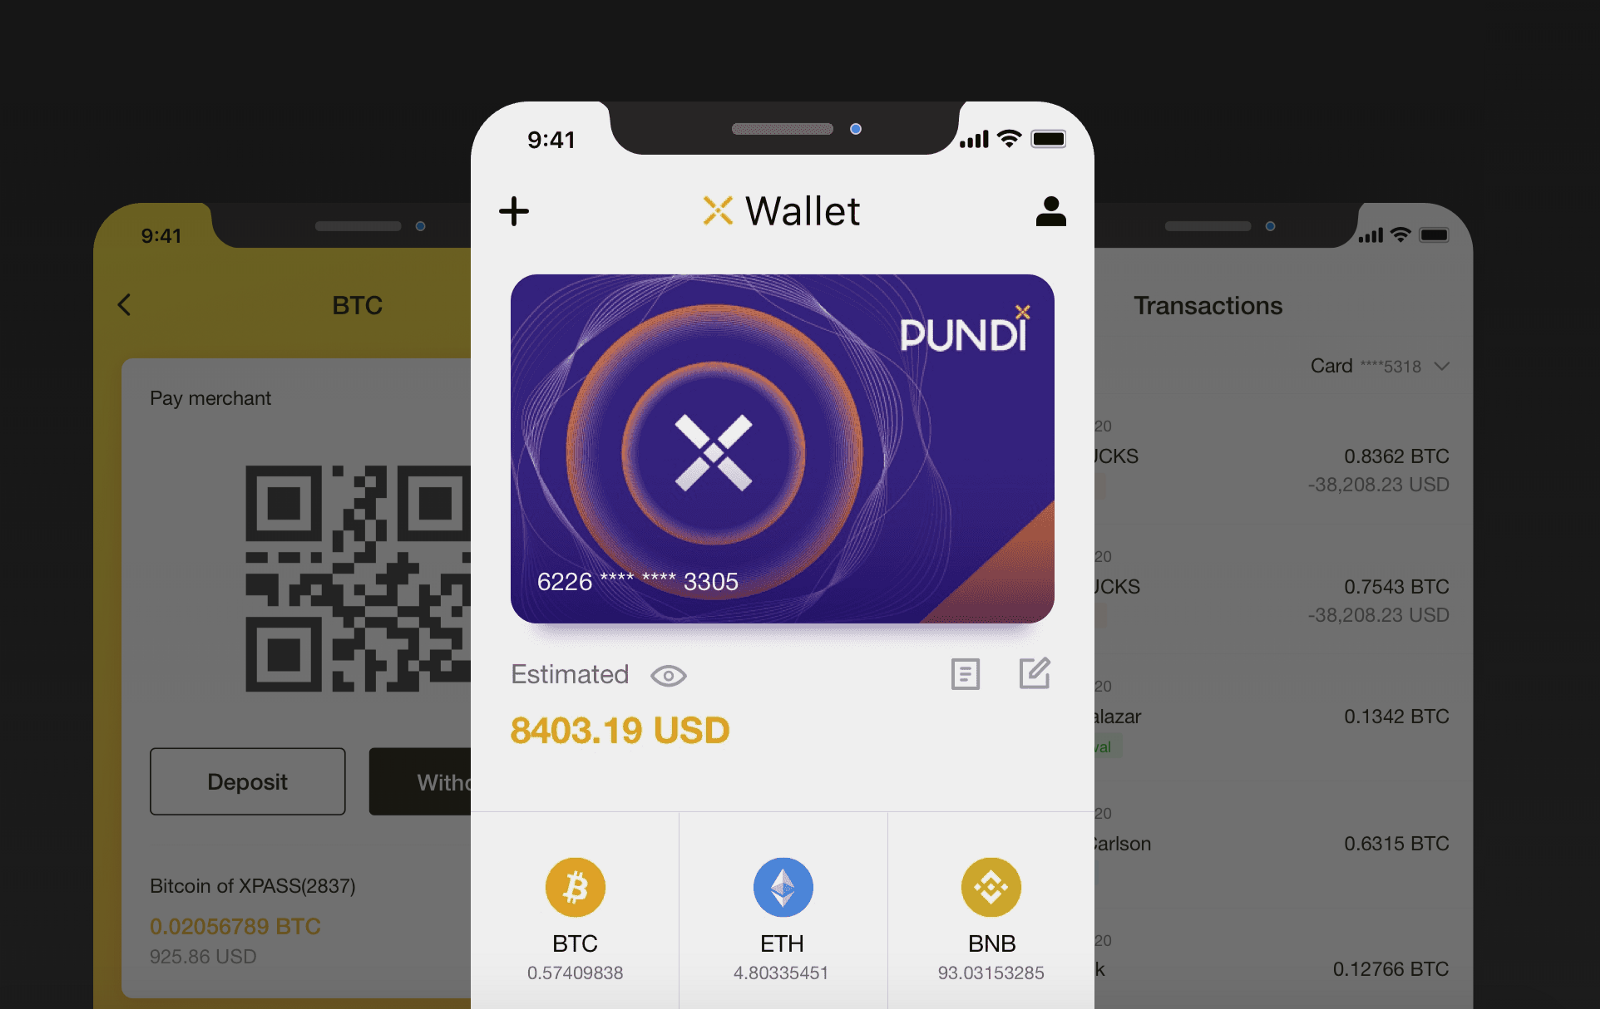 XWallet - Digital Payments Made Easy on Mobile Device